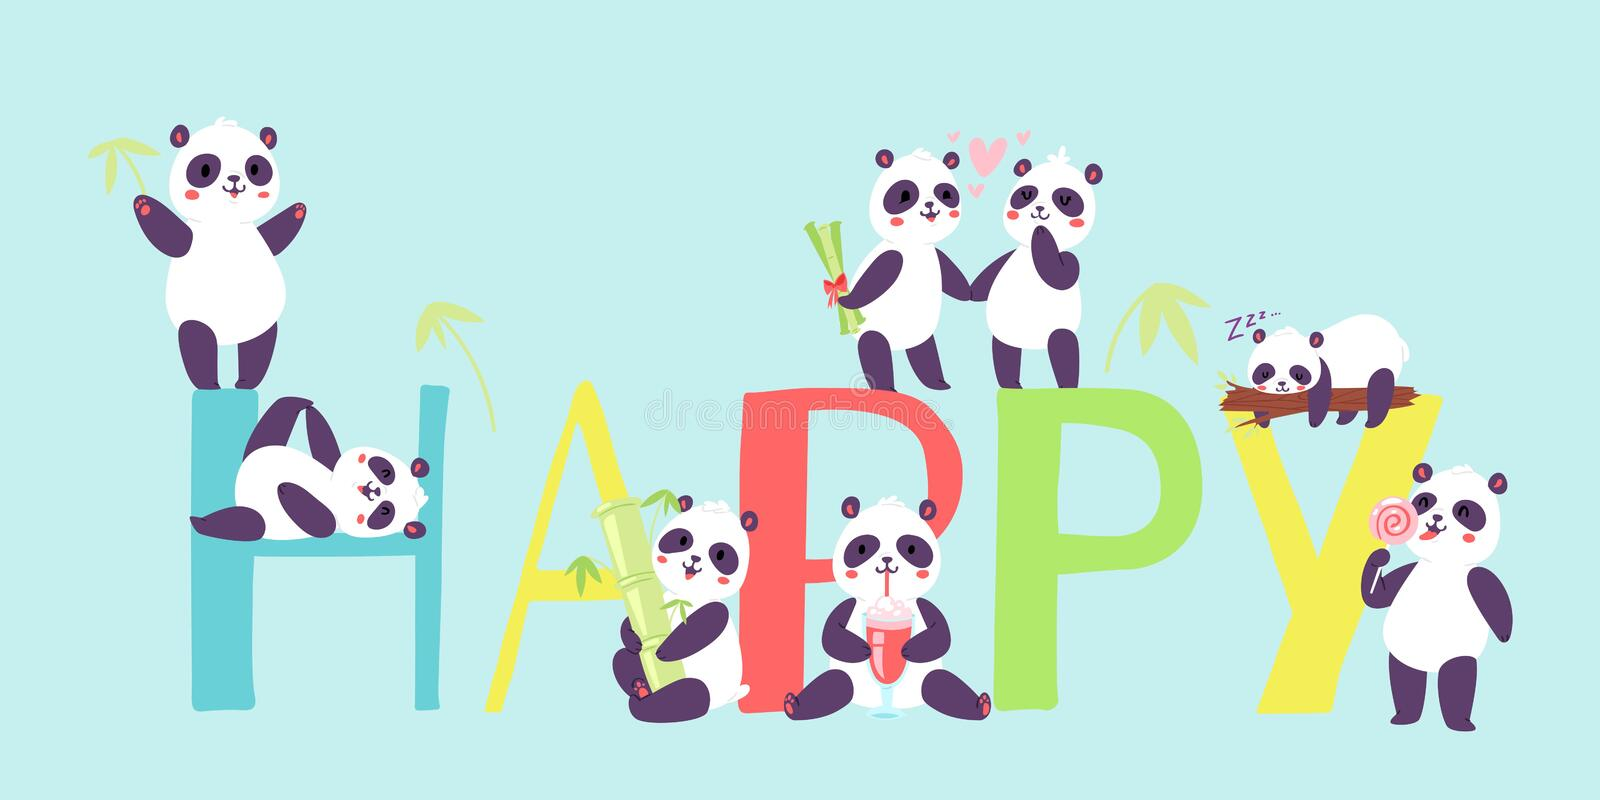 Panda characters in different positions banner vector illustration. Chinese bear newborn happy panda toys. Animal stock illustration